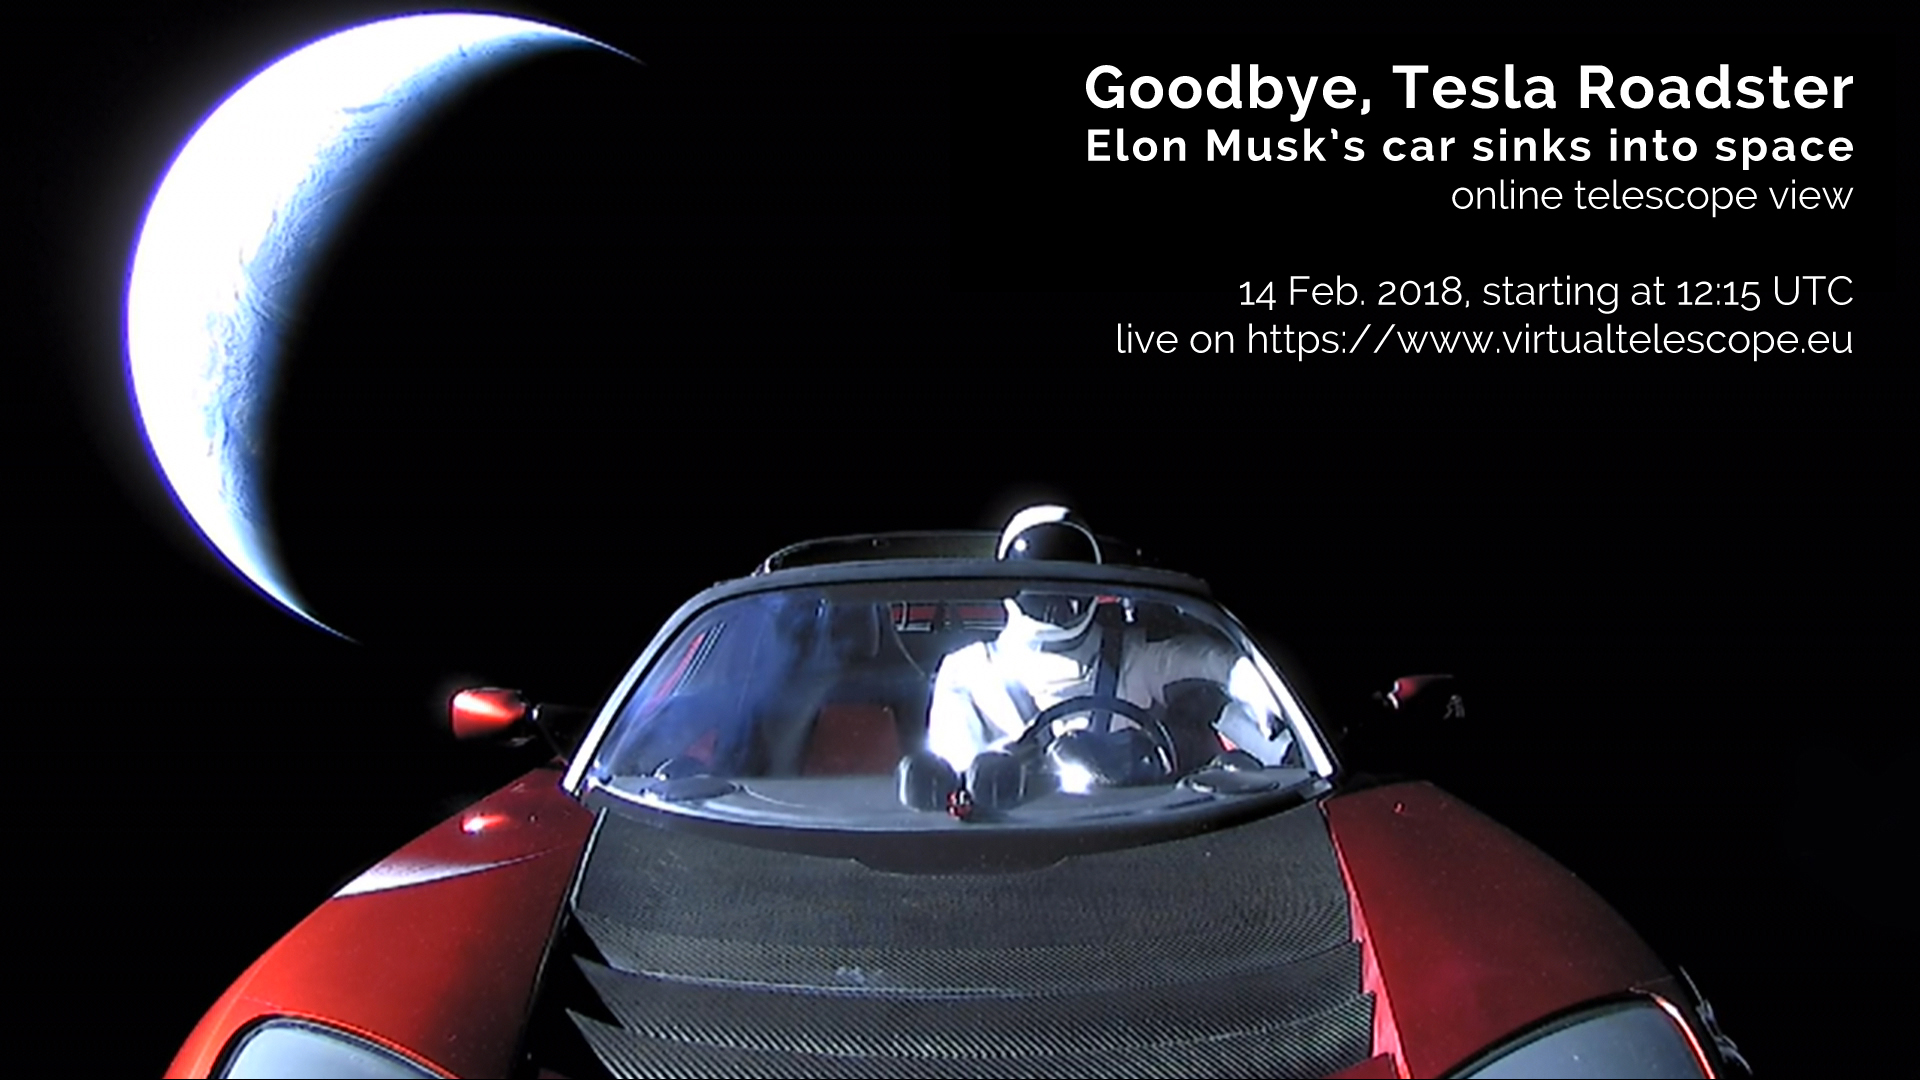 Goodbye tesla roadster elon musks car sinks into space 14 feb the virtual telescope project and tenagra observatories bring to you a once in a lifetime opportunity see the elon musk0s tesla roadster live altavistaventures Choice Image